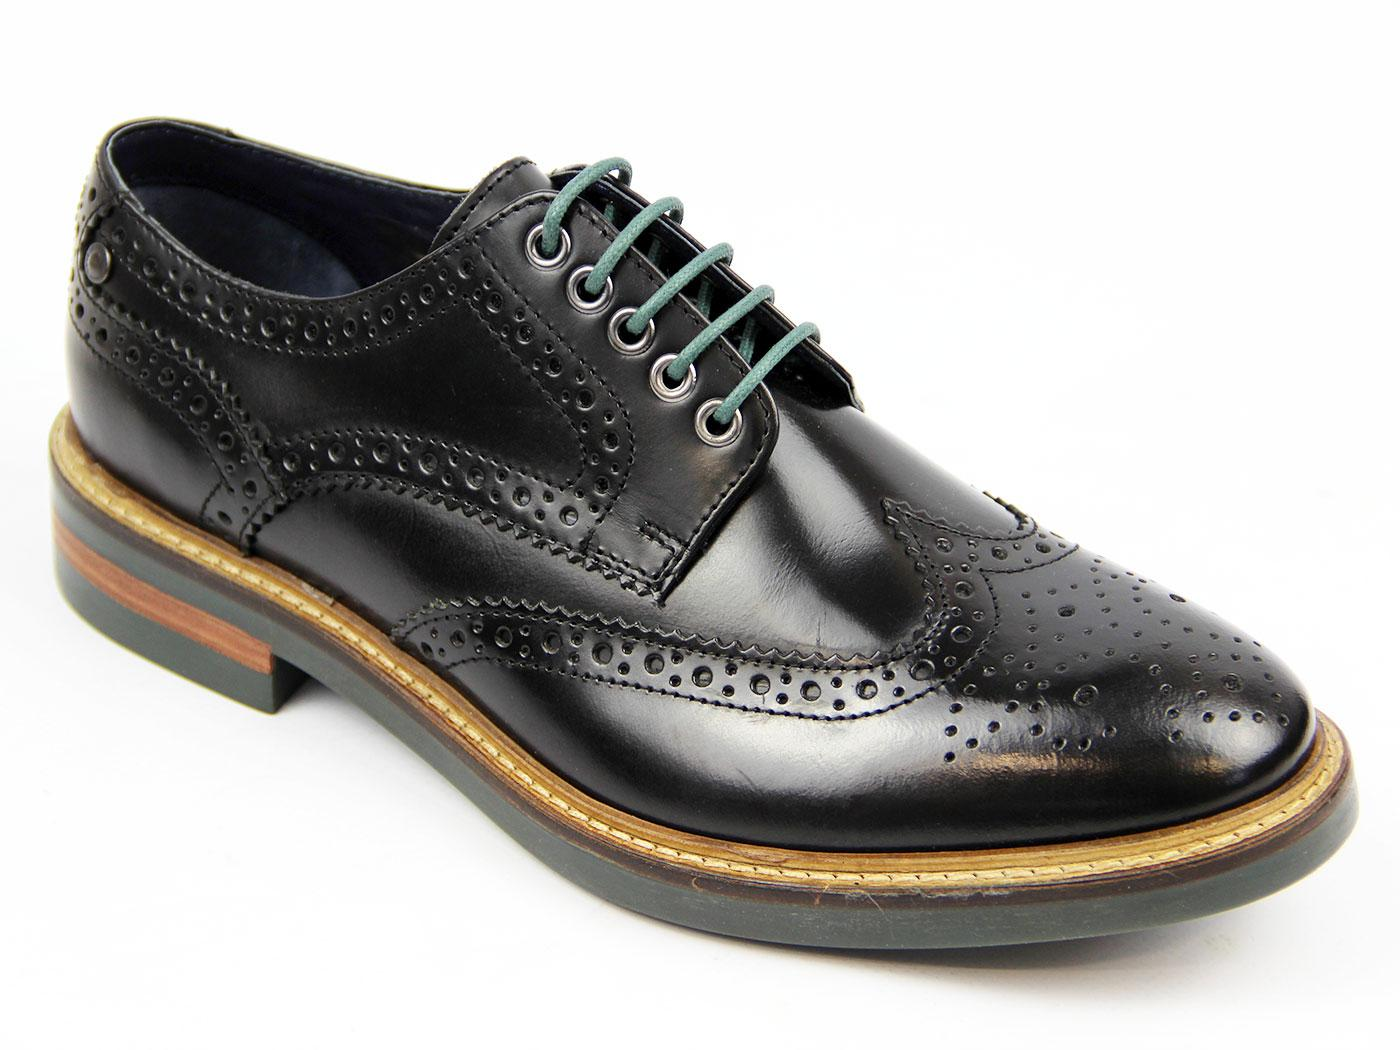 Woburn BASE LONDON Retro Mod Hi Shine Brogues (Bl)